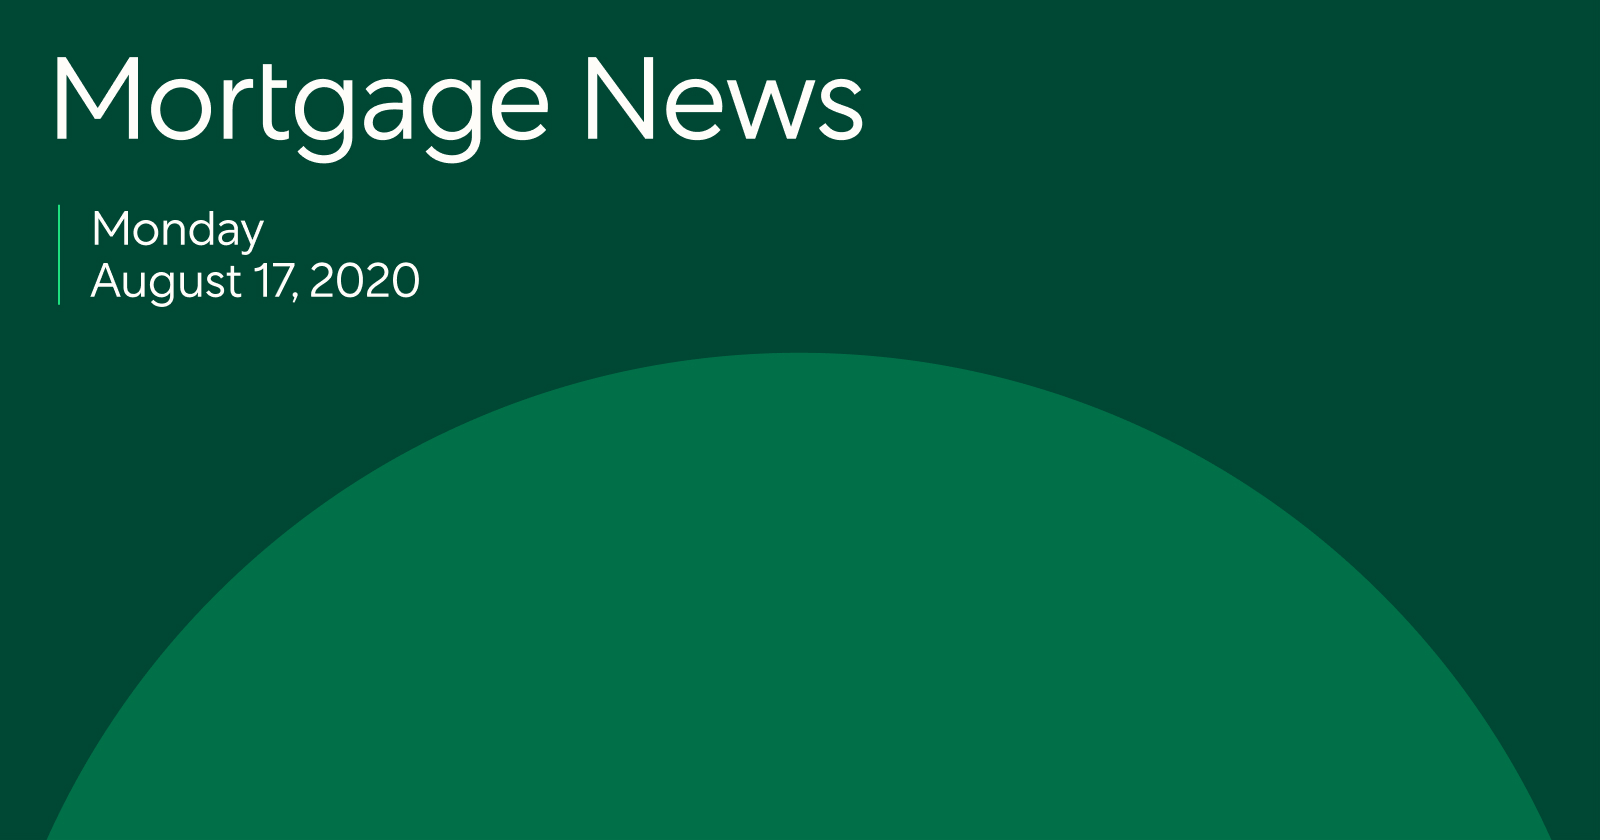 mortgage news 8/17